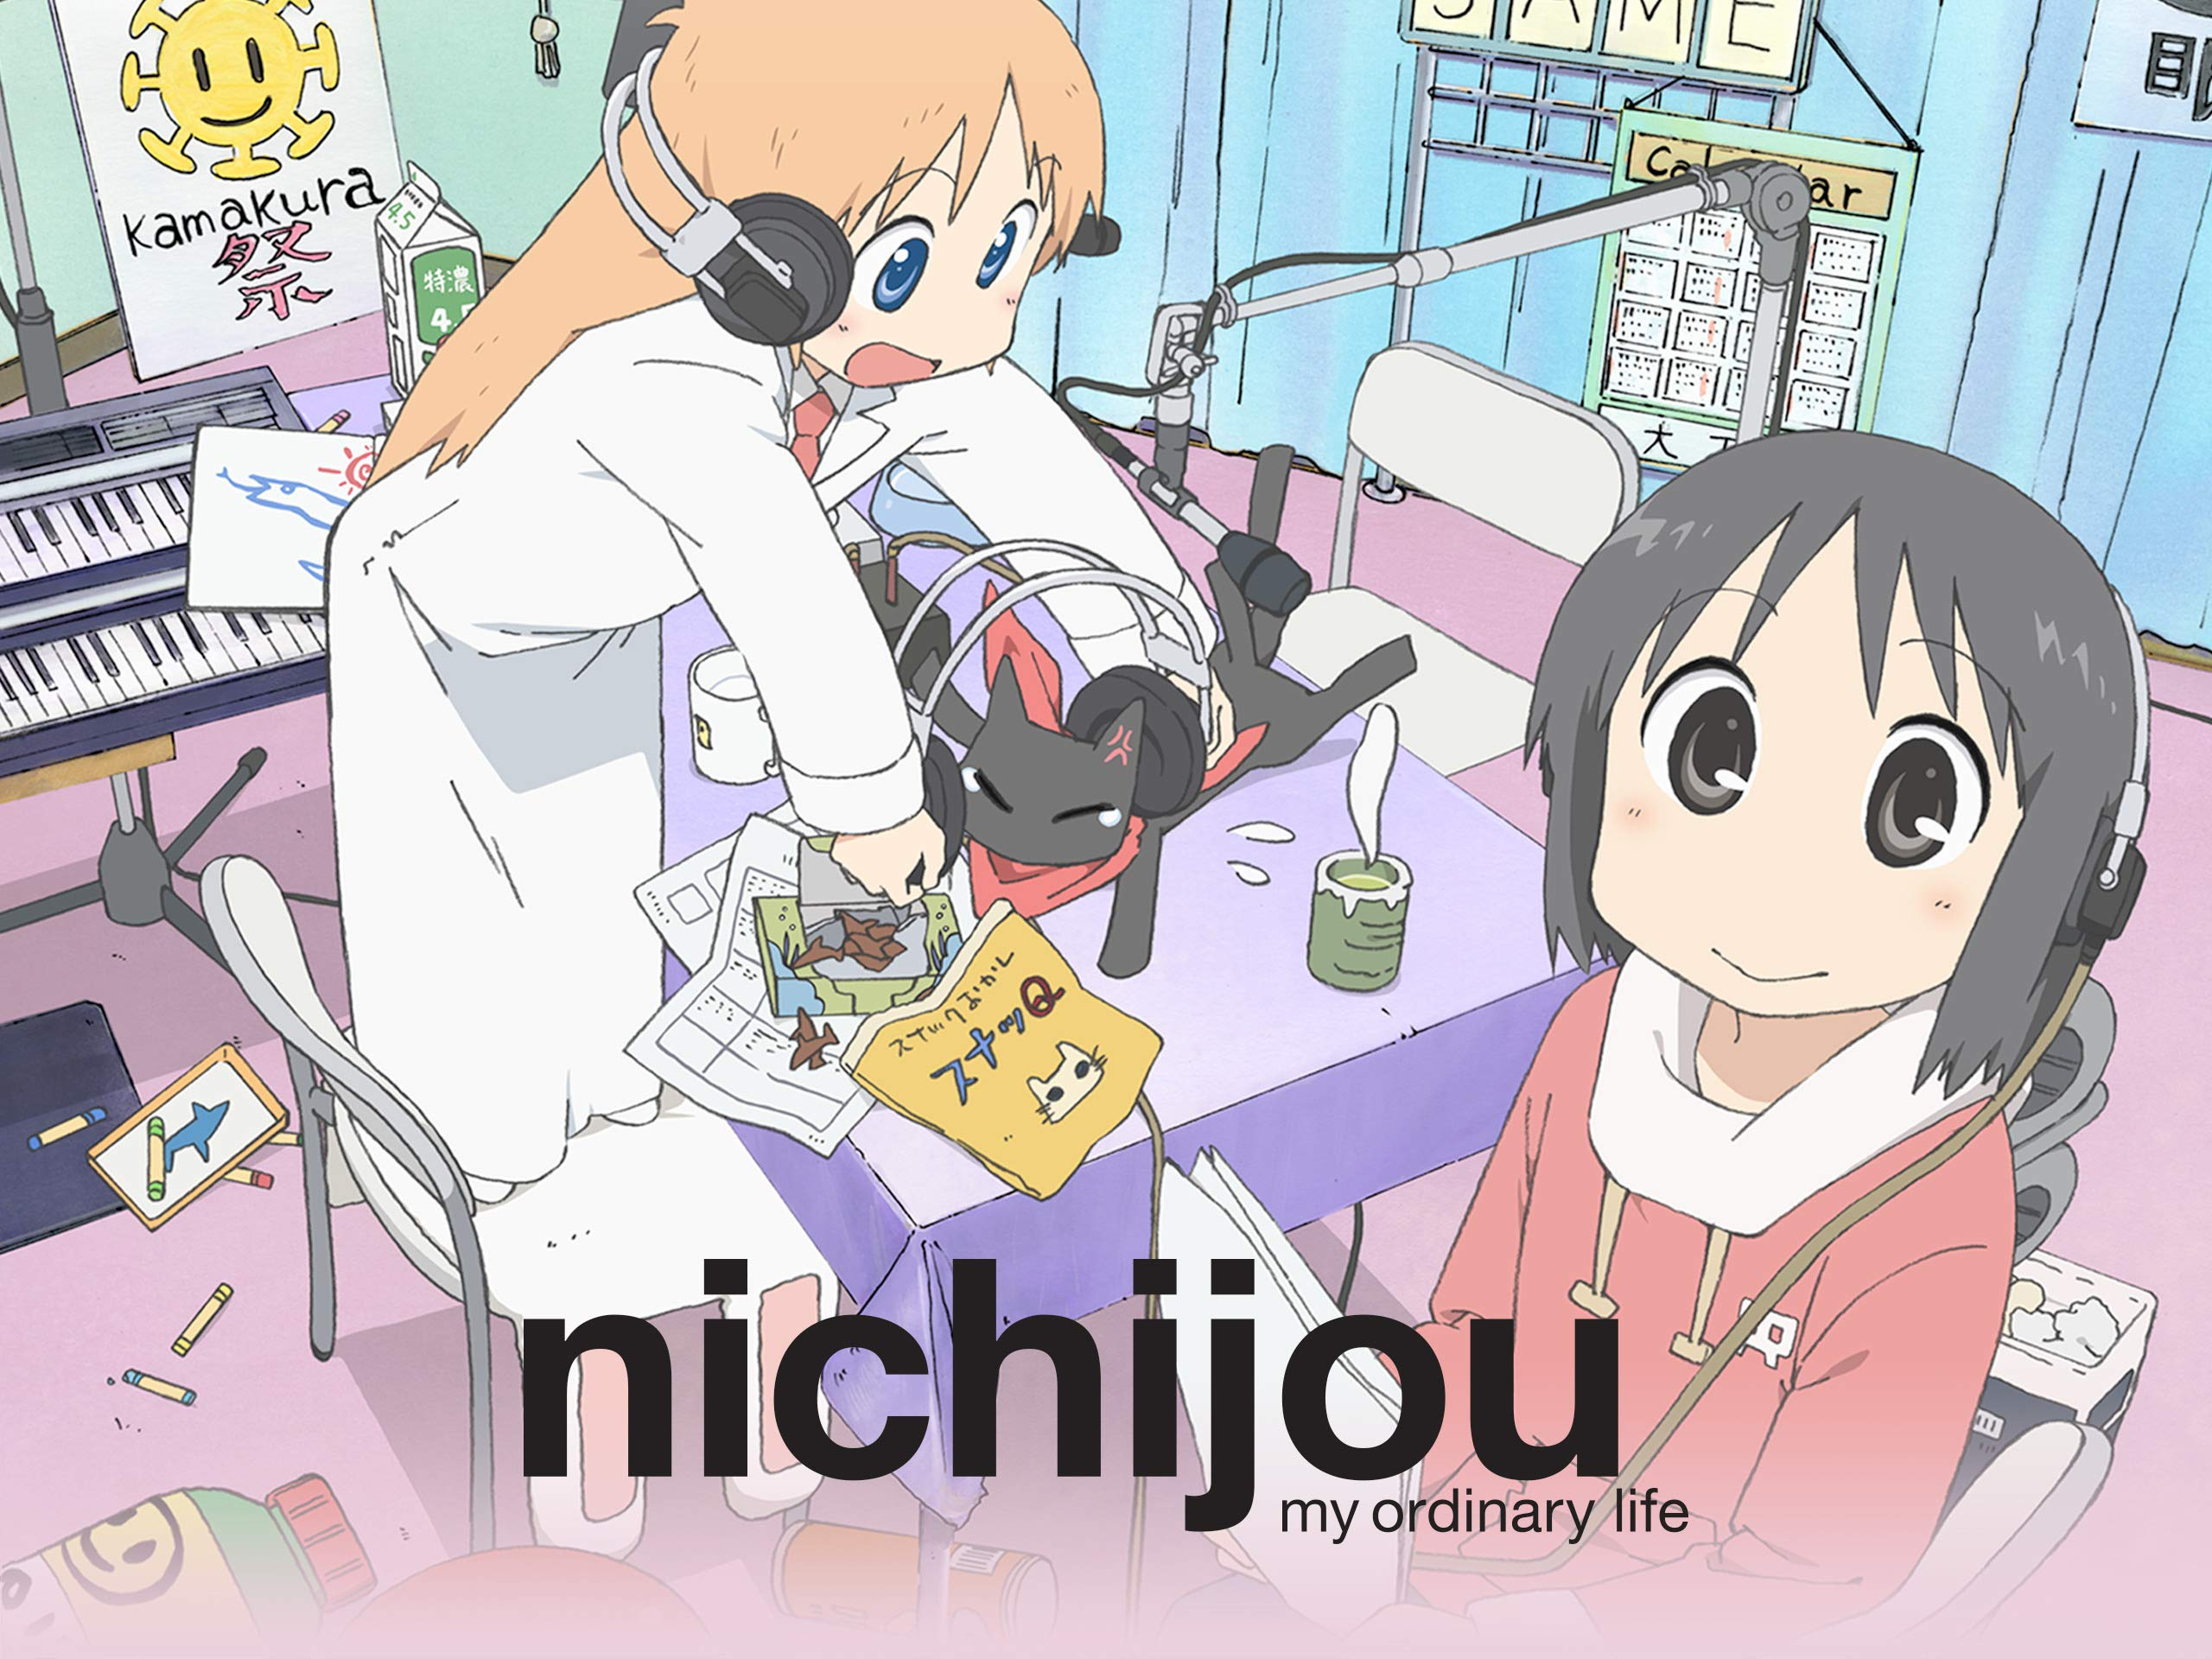 Watch Nichijou - My Ordinary Life | Prime Video